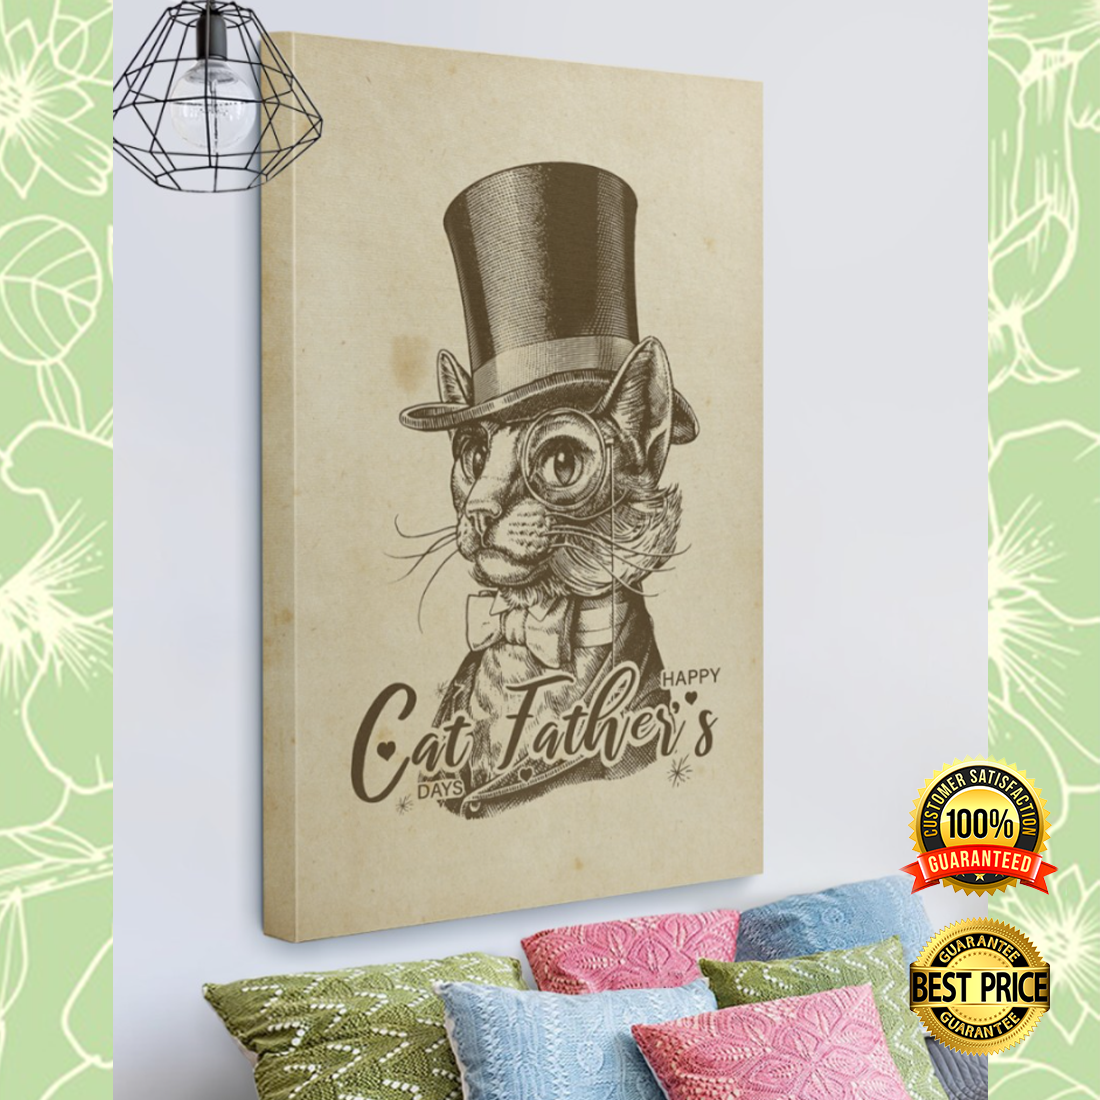 Happy cat father's days canvas 4